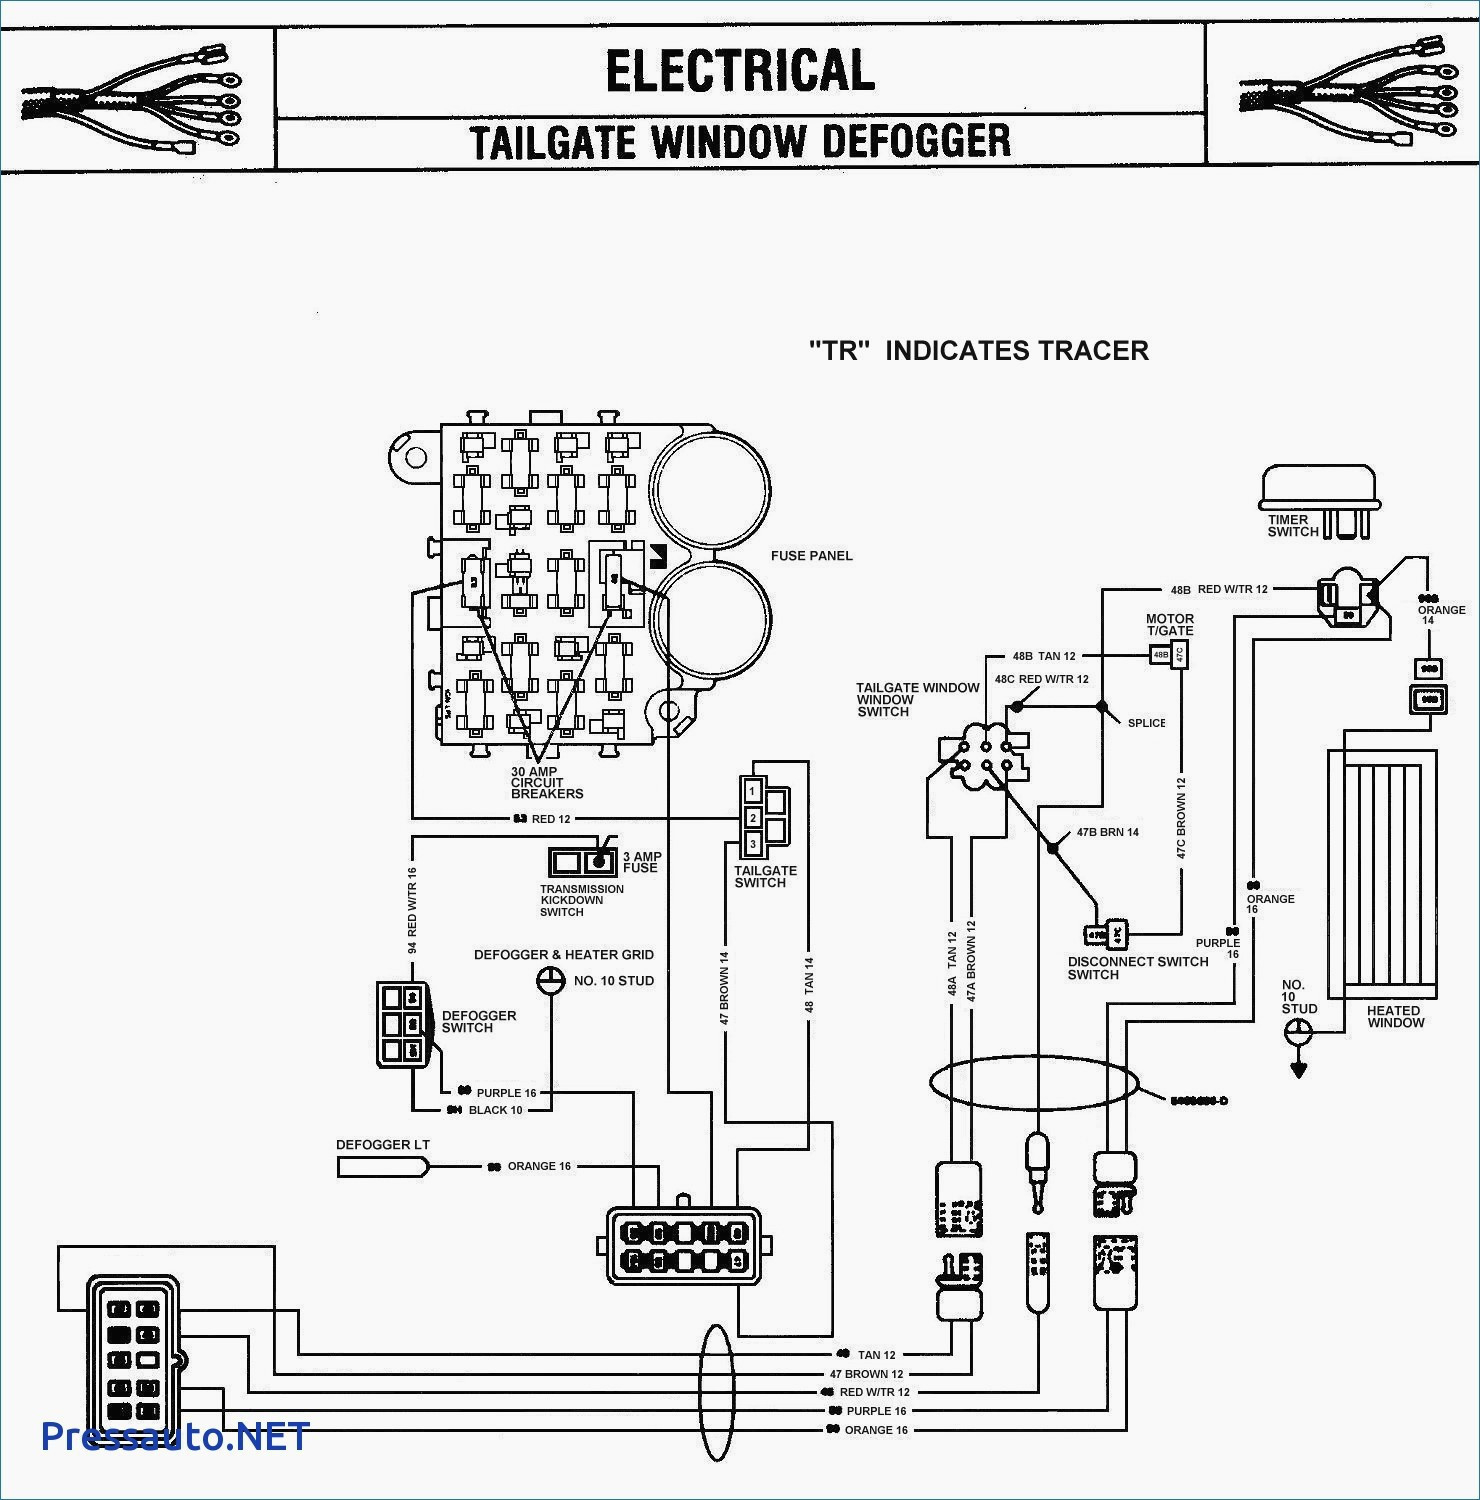 Central ac unit wiring diagram wire center carrier ac unit wiring diagram gallery wiring diagram sample rh faceitsalon com 2008 suzuki forenza wiring diagram coleman ac wiring diagram asfbconference2016 Image collections